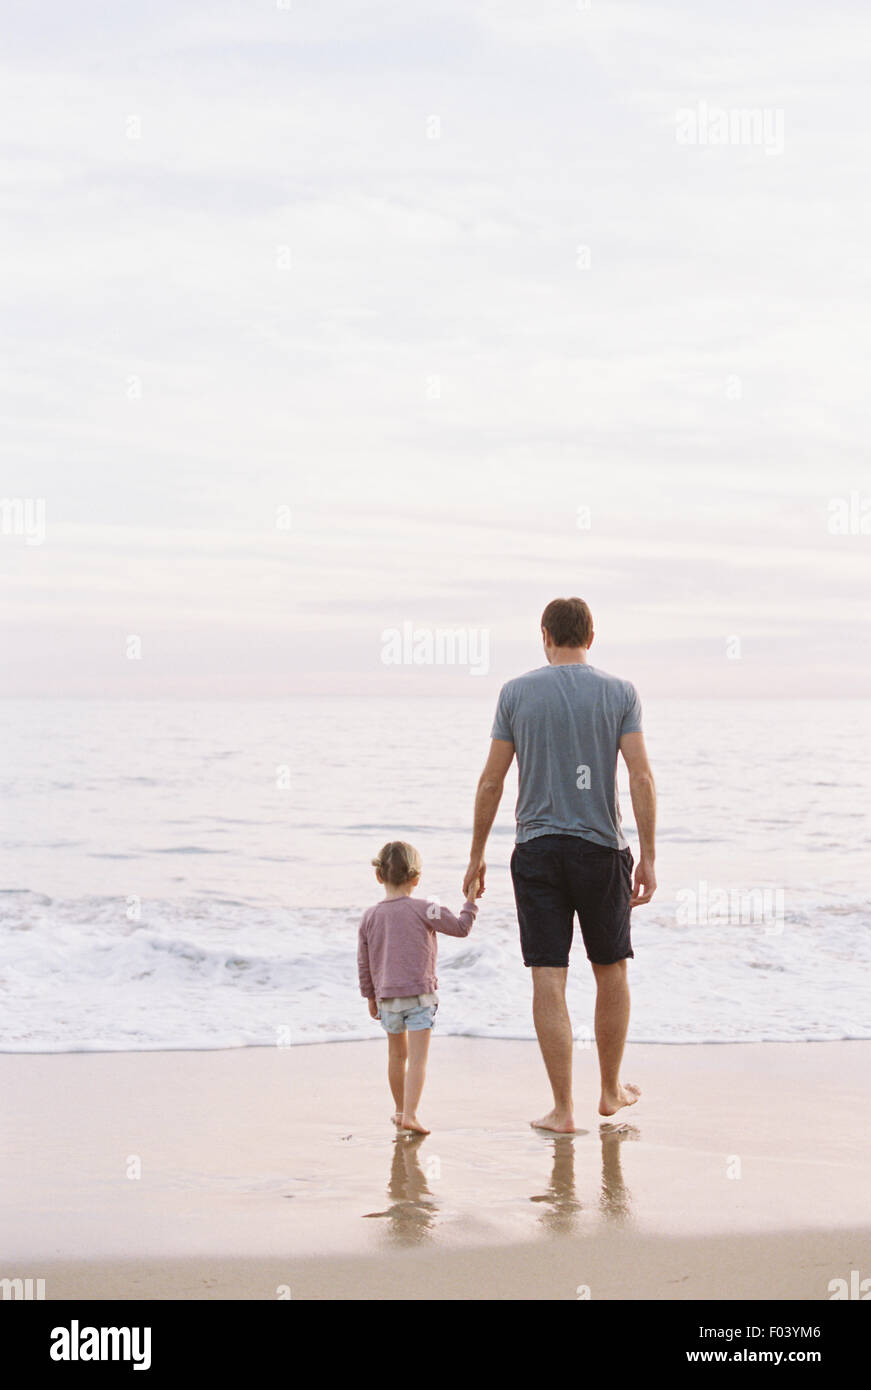 Man standing on a sandy beach by the ocean, holding his young daughter's hand. - Stock Image